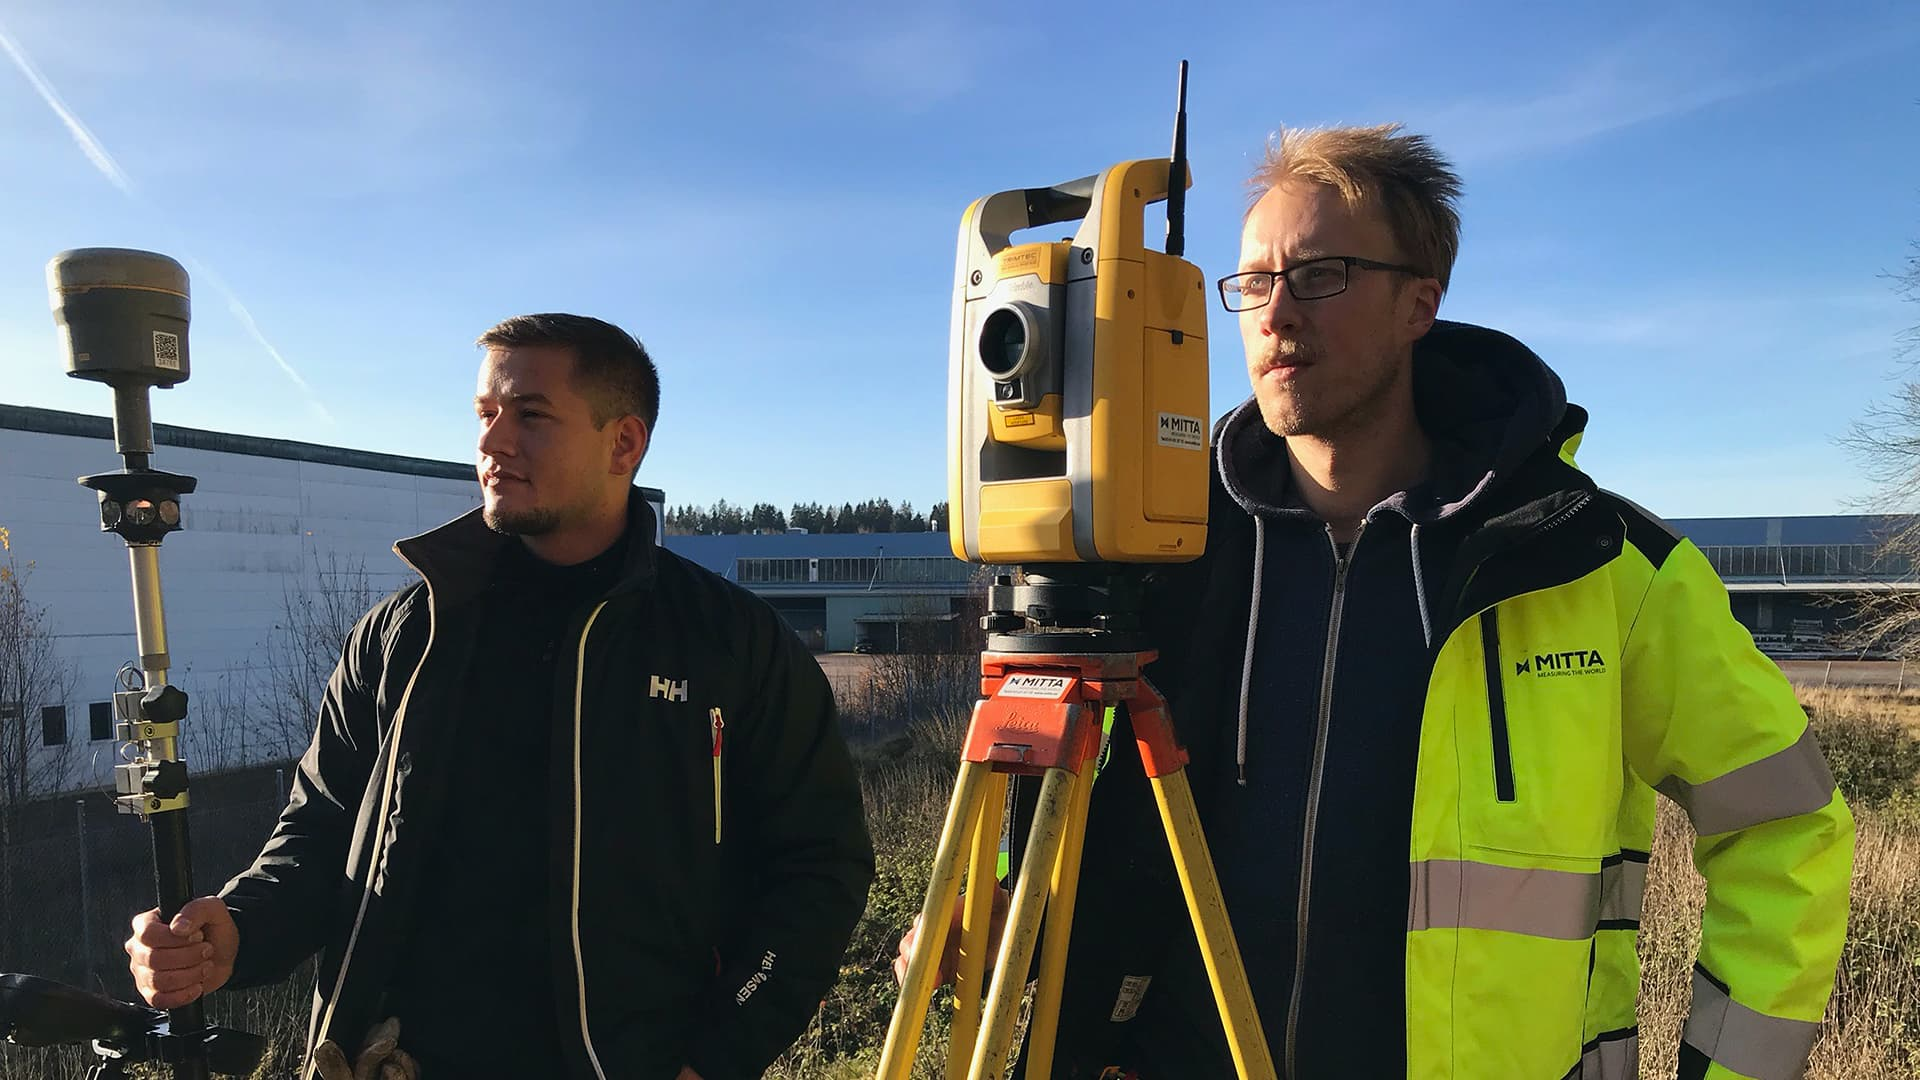 Two men stand outside with surveying service machines